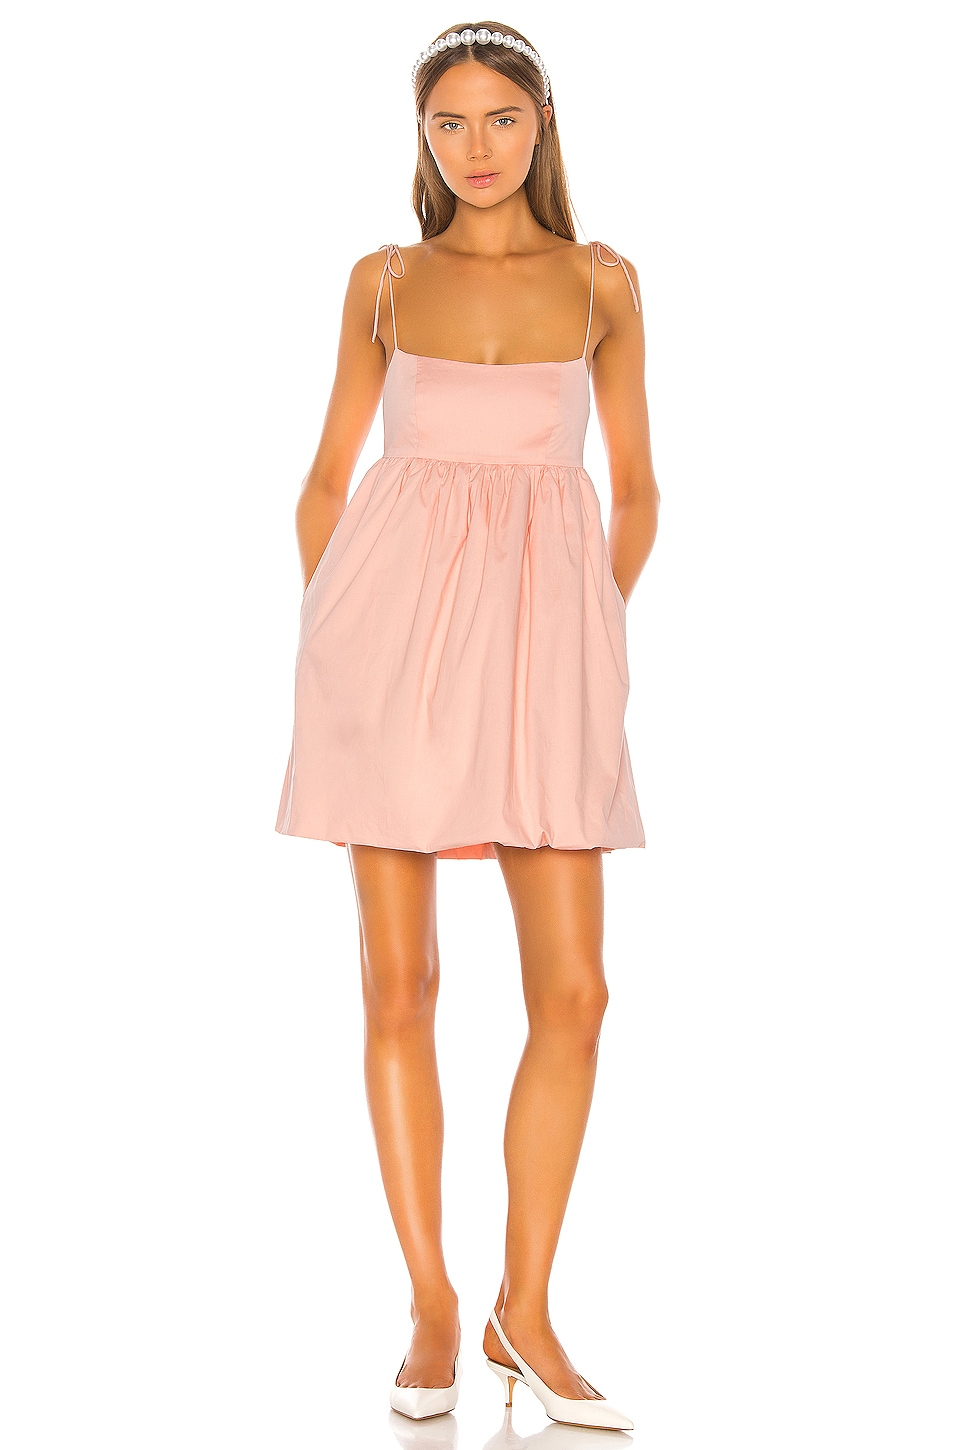 LPA Daria Dress in Baby Pink